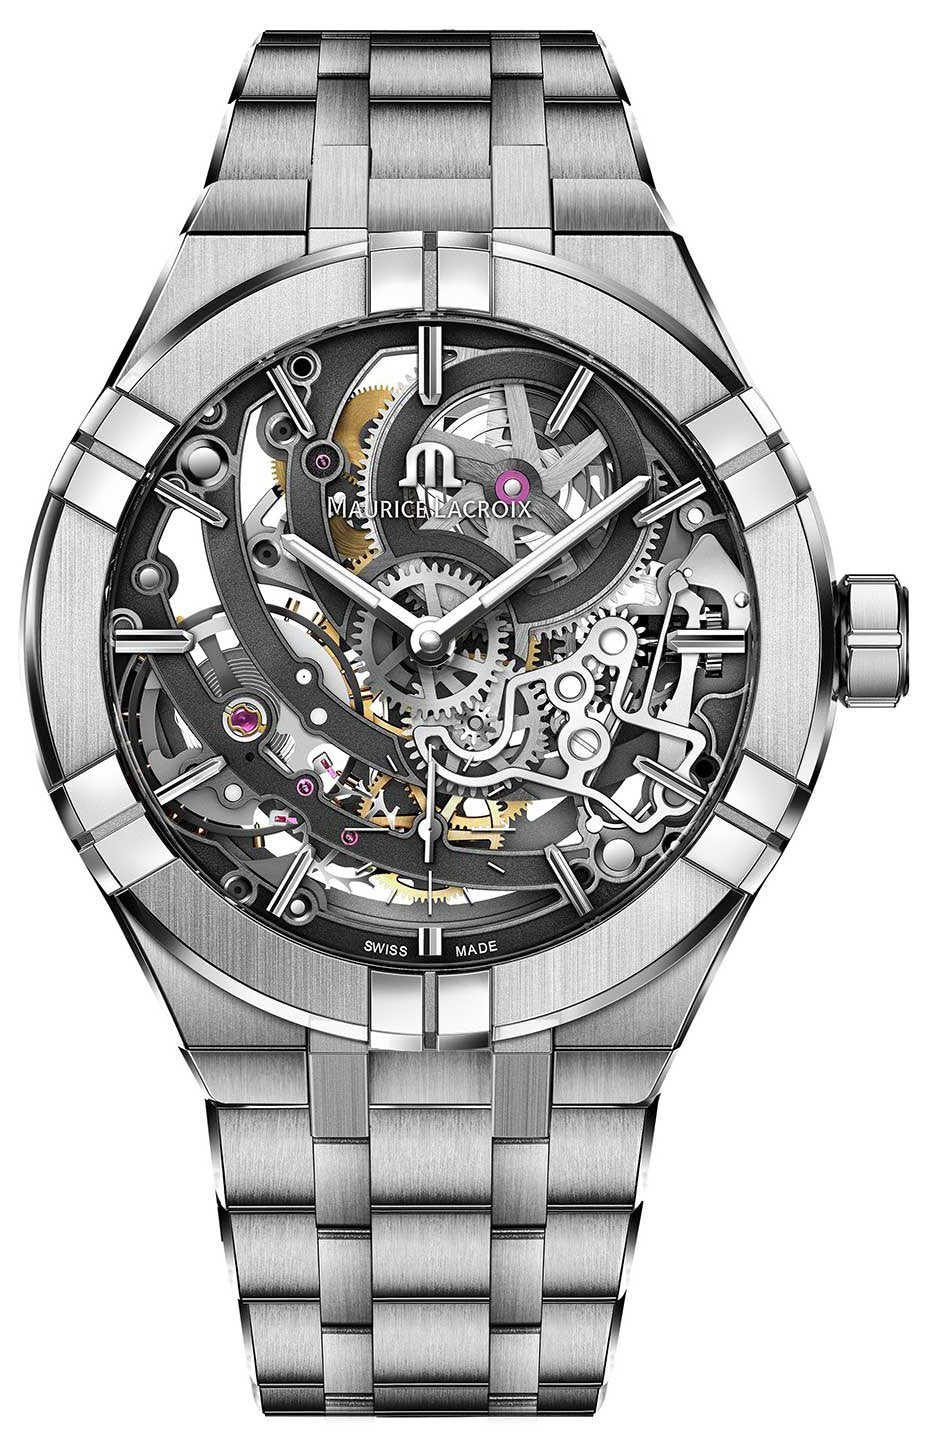 Maurice Lacroix AI6028-SS002-030-1 LIMITED EDITION AIKON Skeleton Automatic Stainless Steel Watch